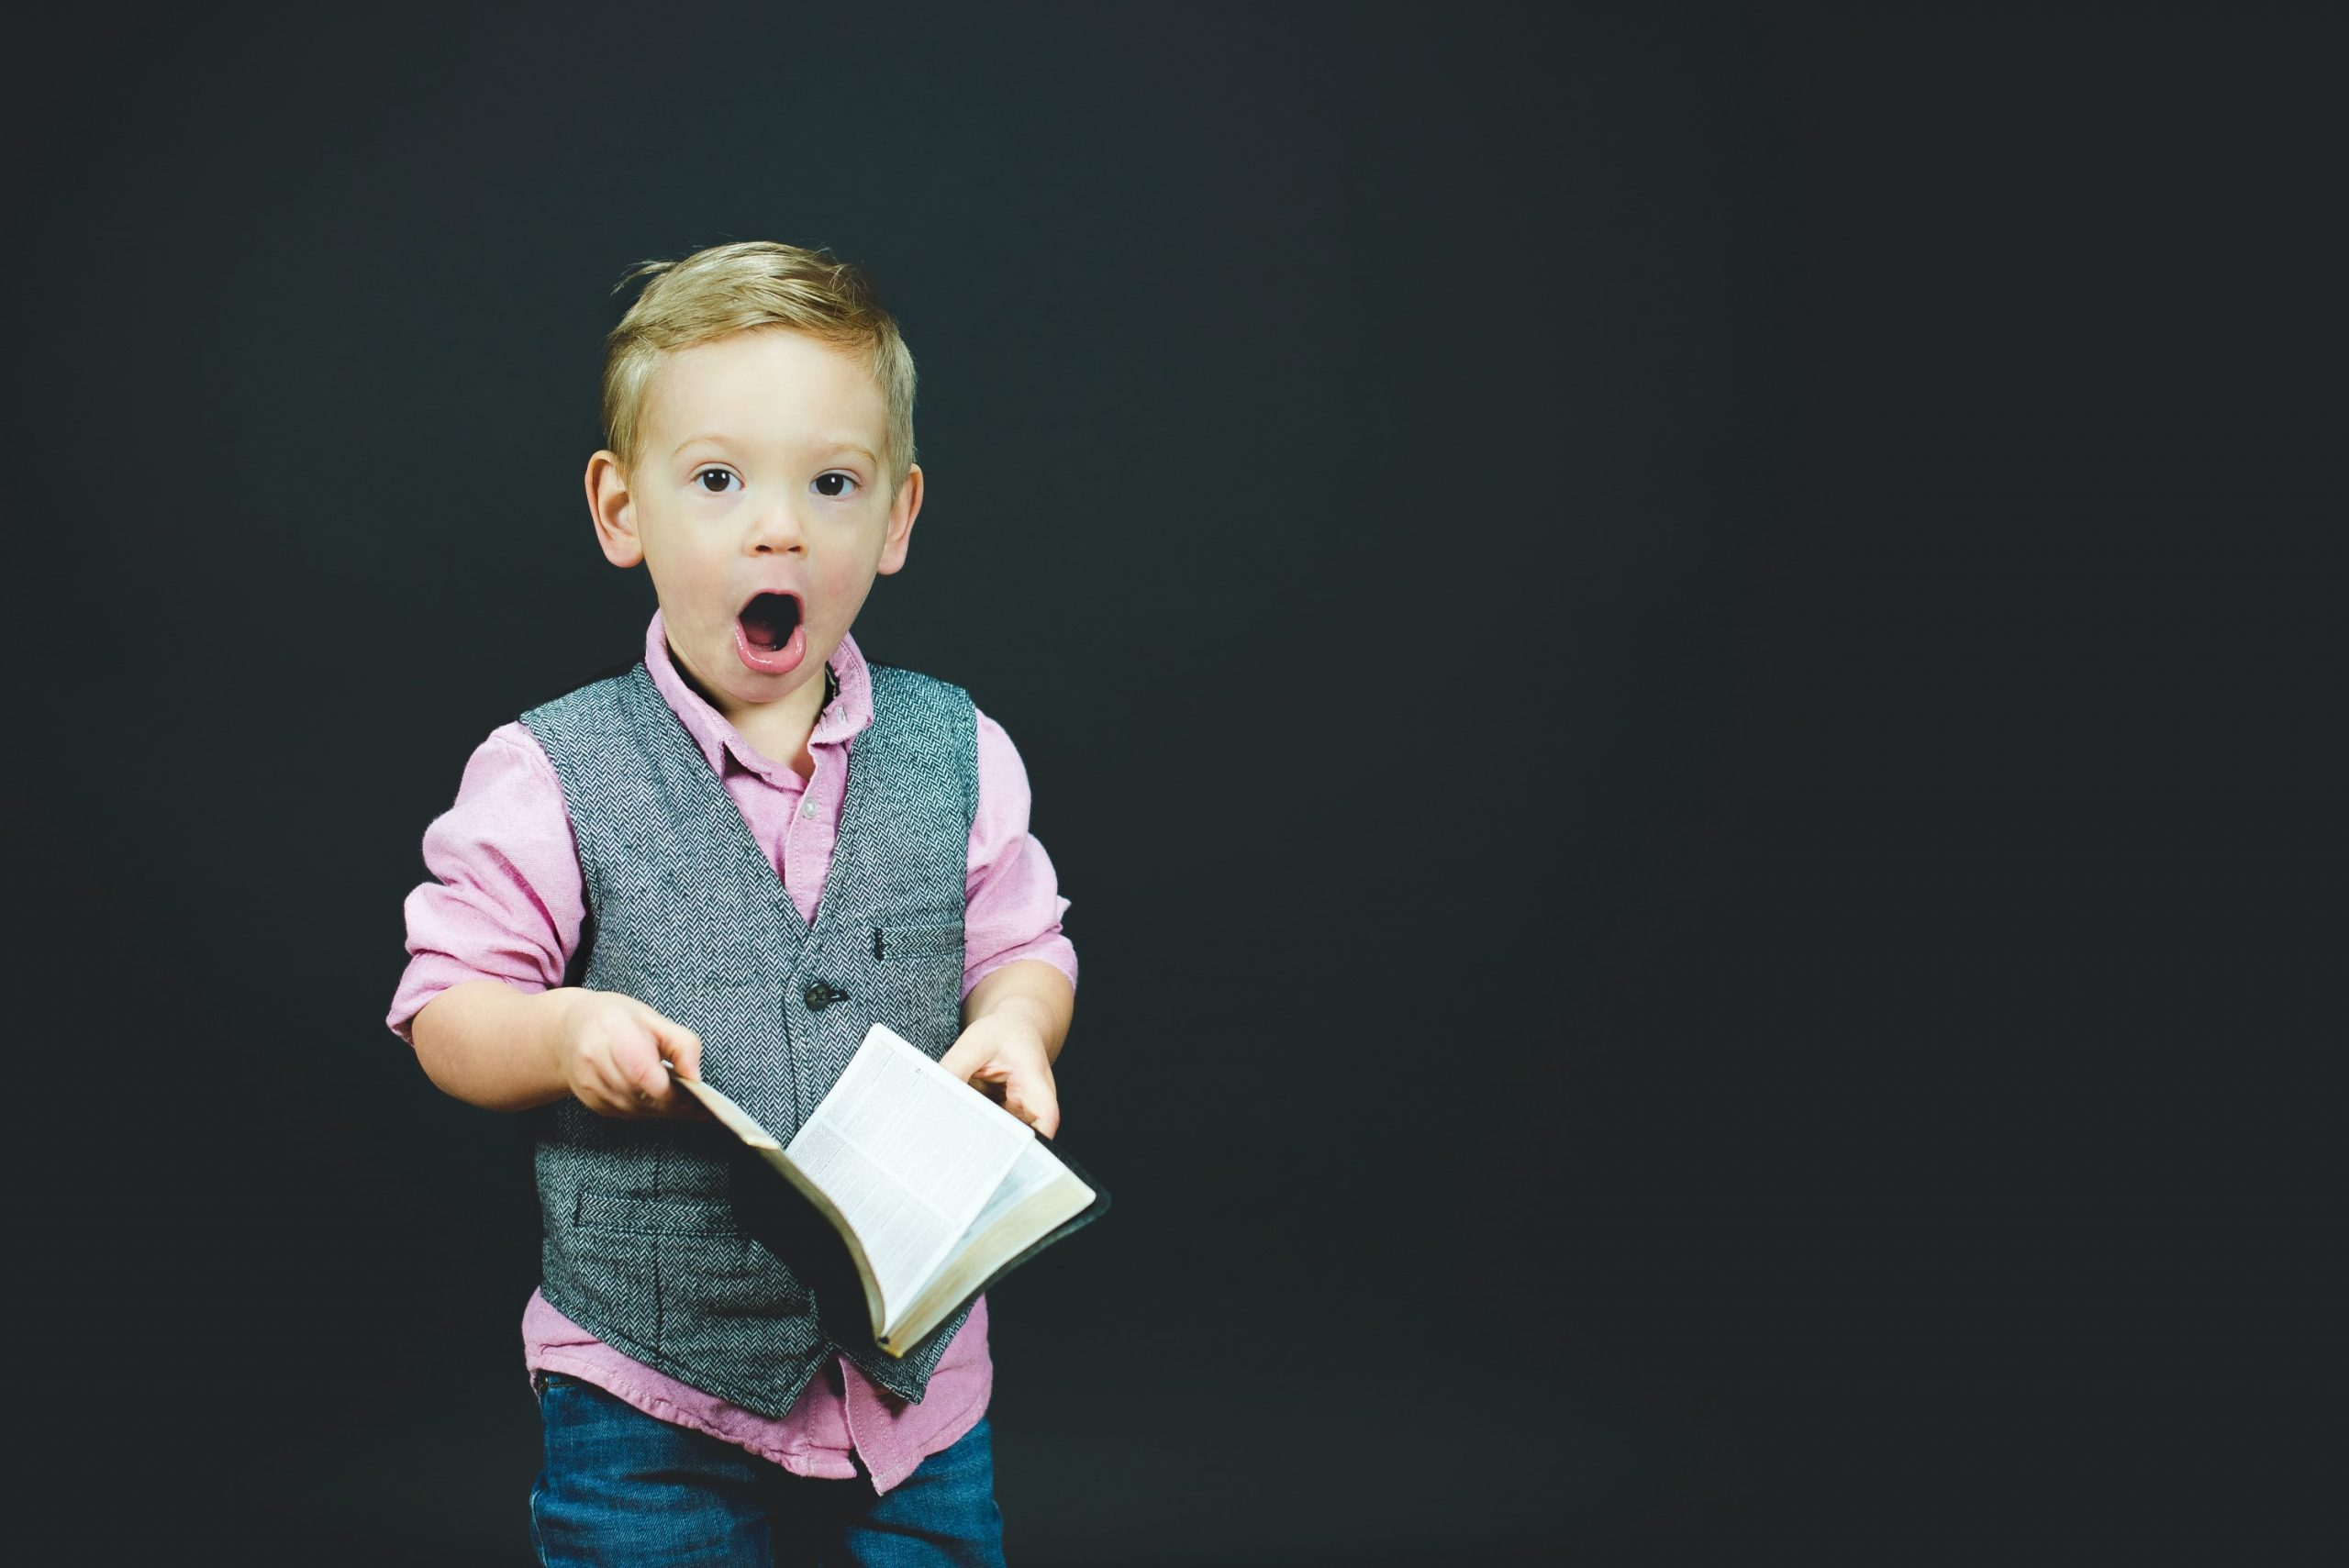 Photo by Ben White on Unsplash. Boy opening book looking surprised